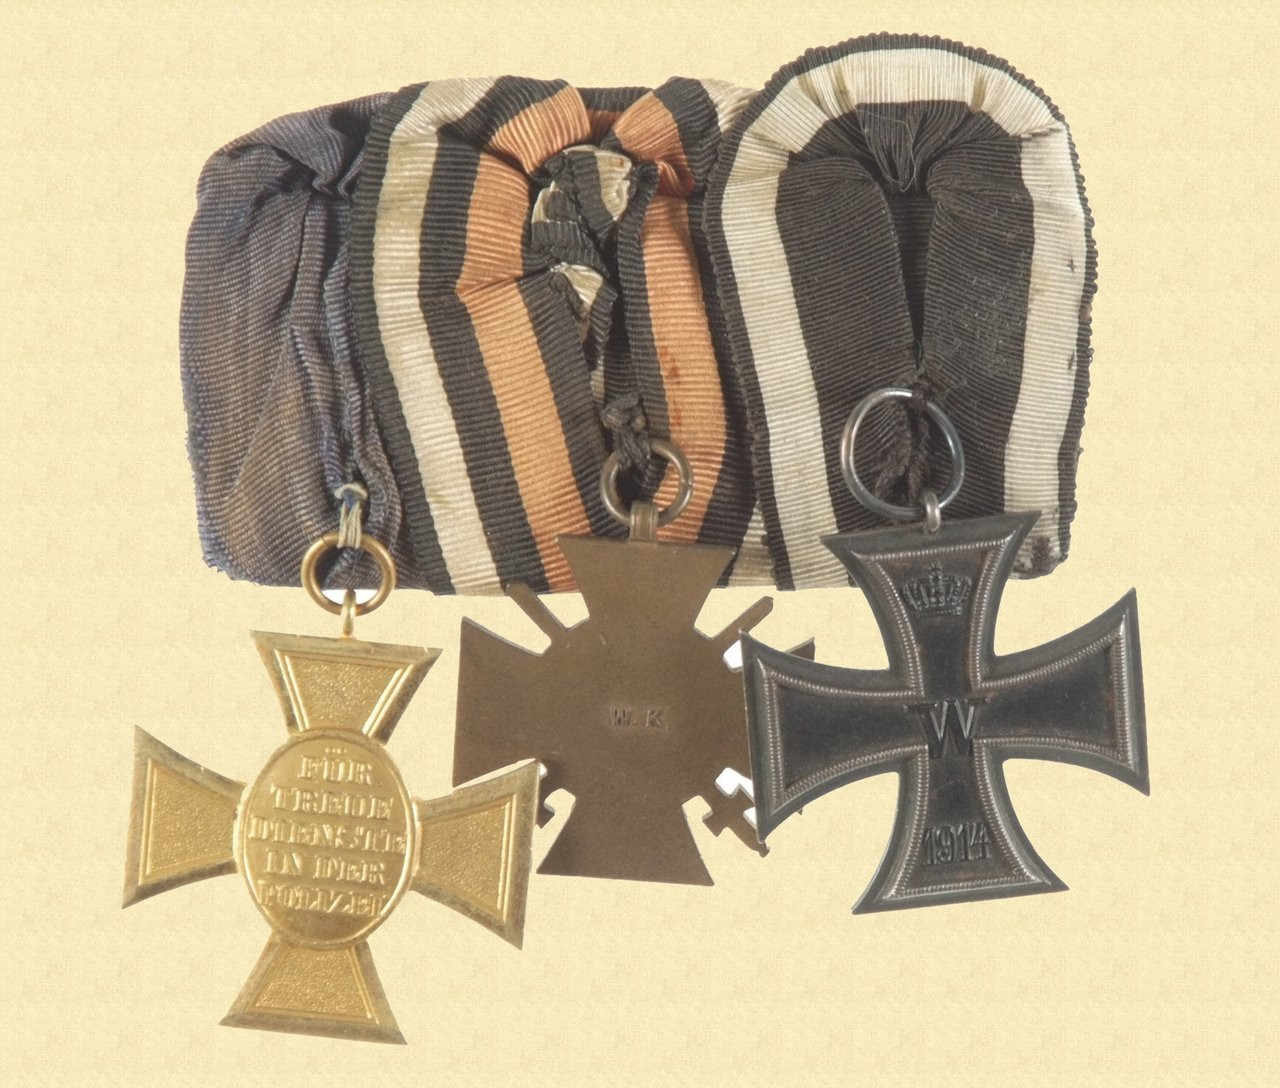 GERMAN WW1 VETERAN MEDALS - C10674